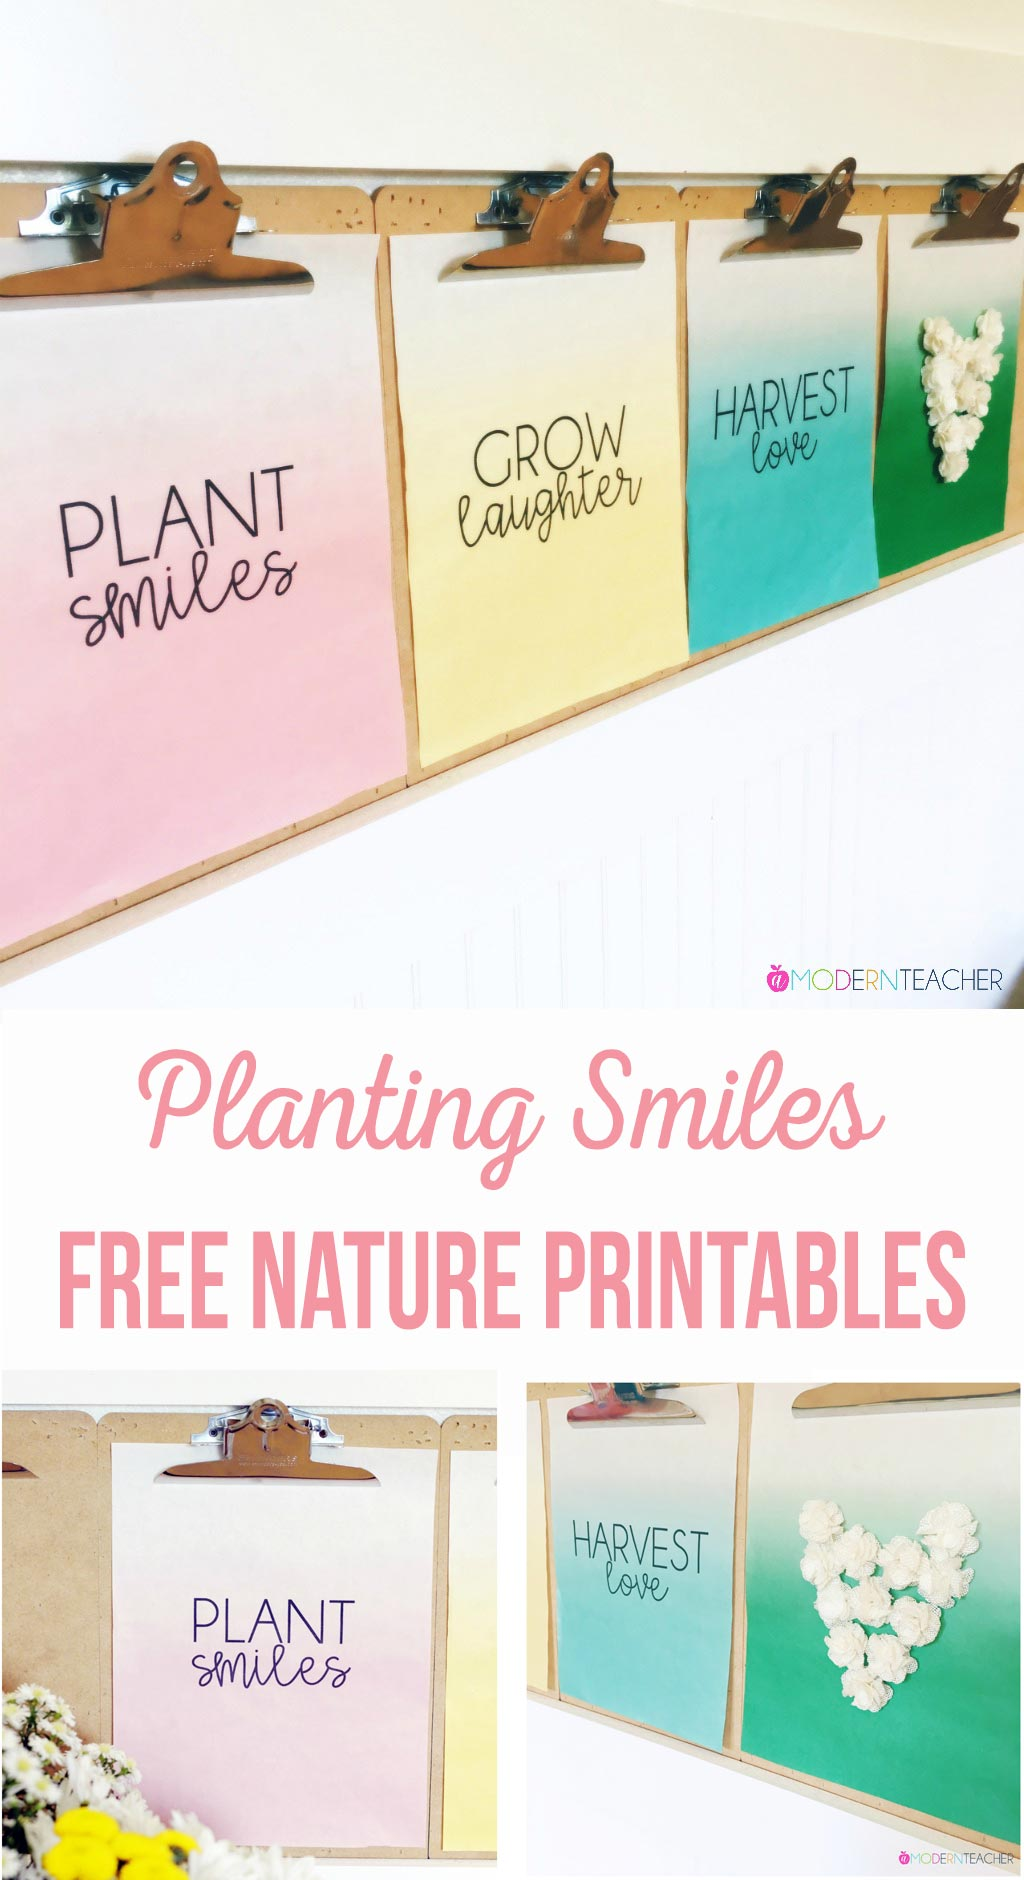 Add a little touch of nature inside with this free printable; spruce up your gallery wall for year round inspiration! Simple sayings that inspire.